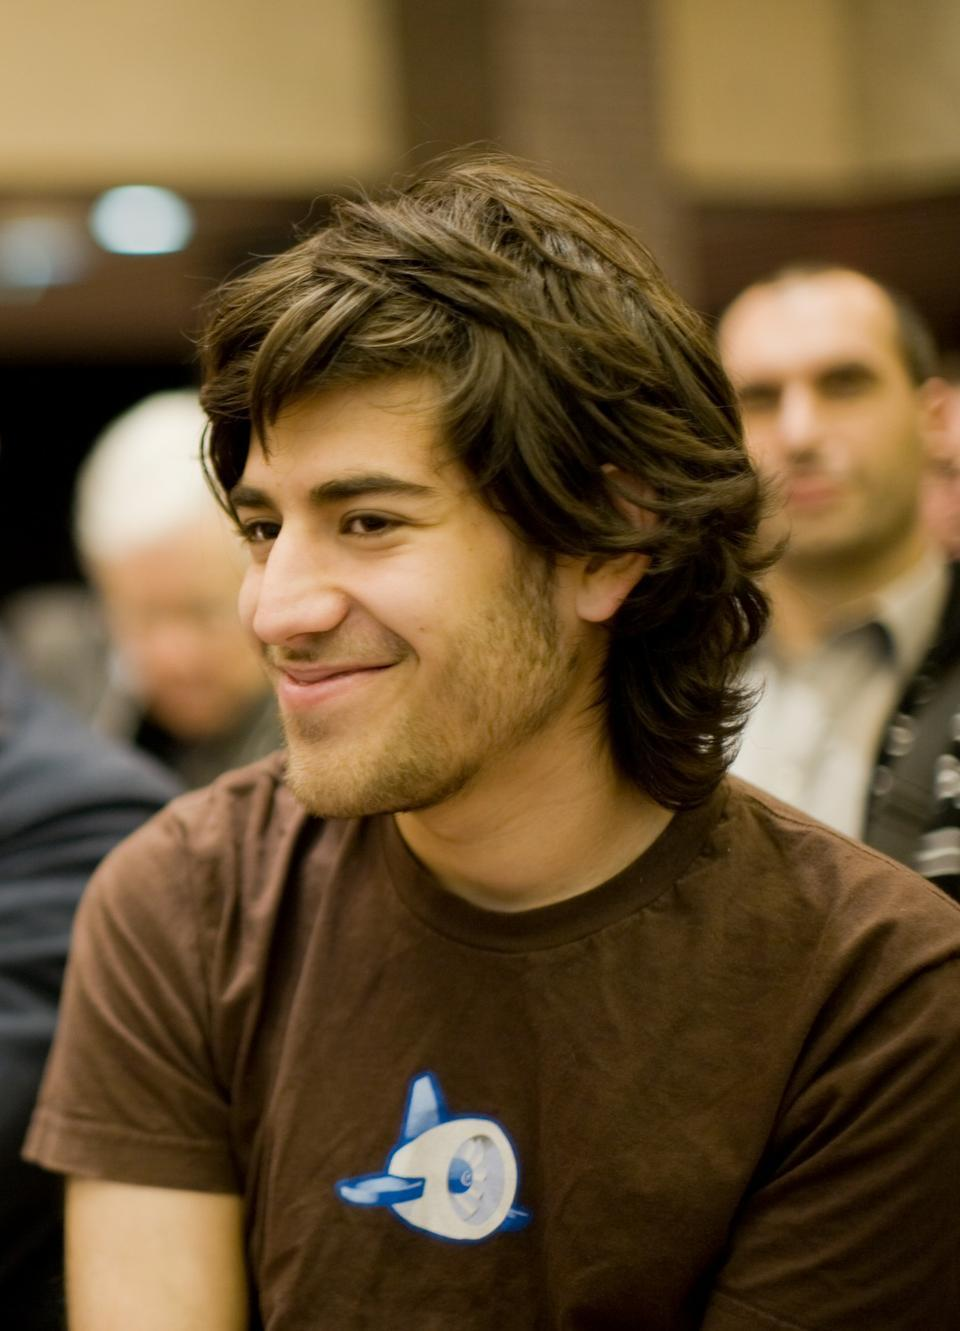 Aaron Swartz, pictured here, is accused of hacking into MIT's network and stealing over four million documents from JSTOR.